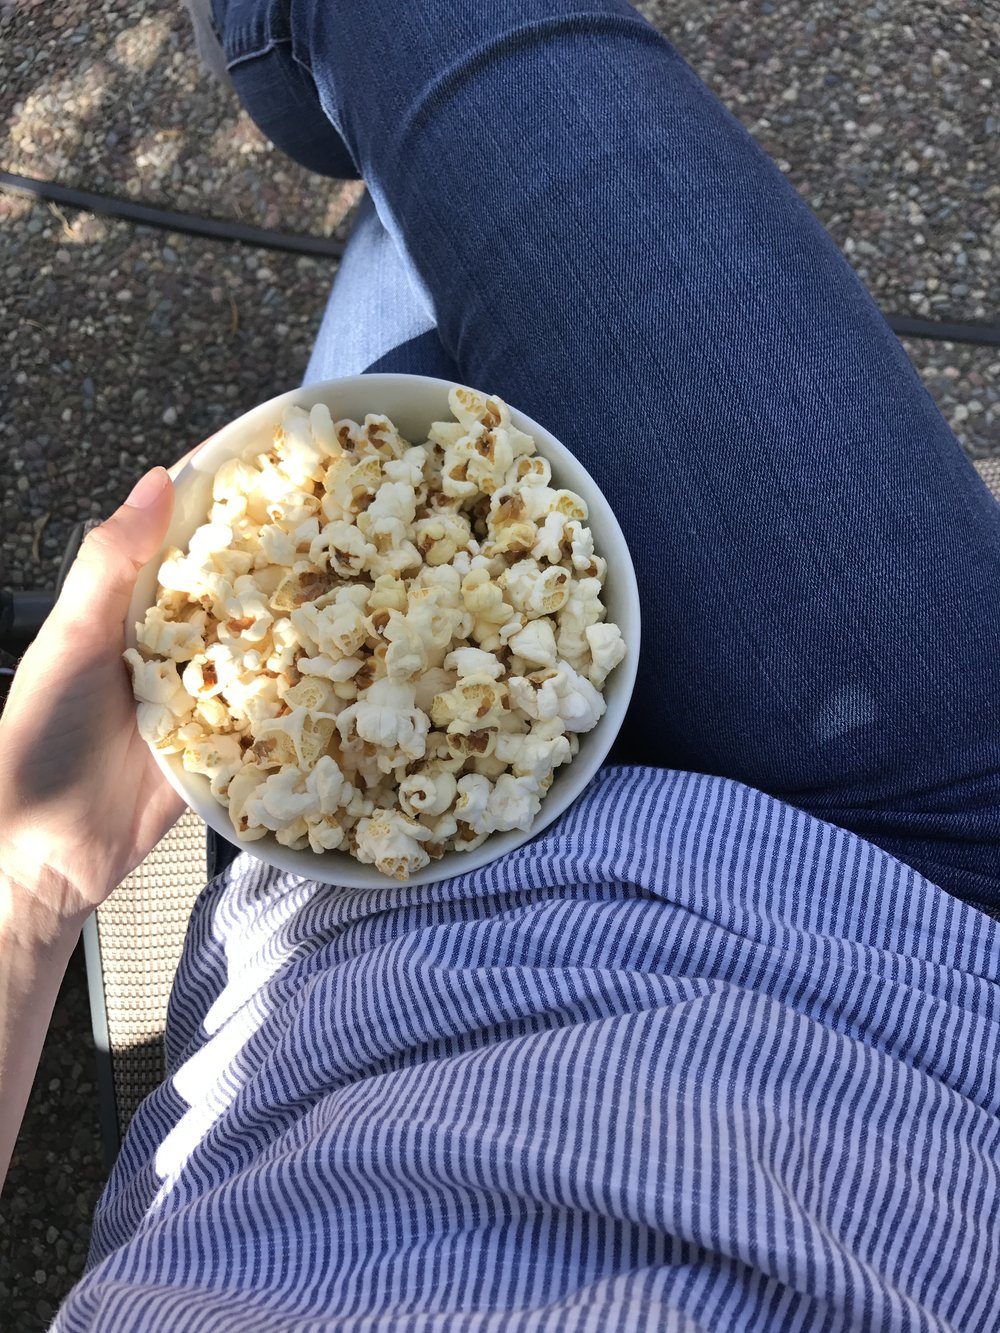 Enjoyed some 'Book Chica Pop' Popcorn pool side on Saturday! I may or may not have devoured the bowl.